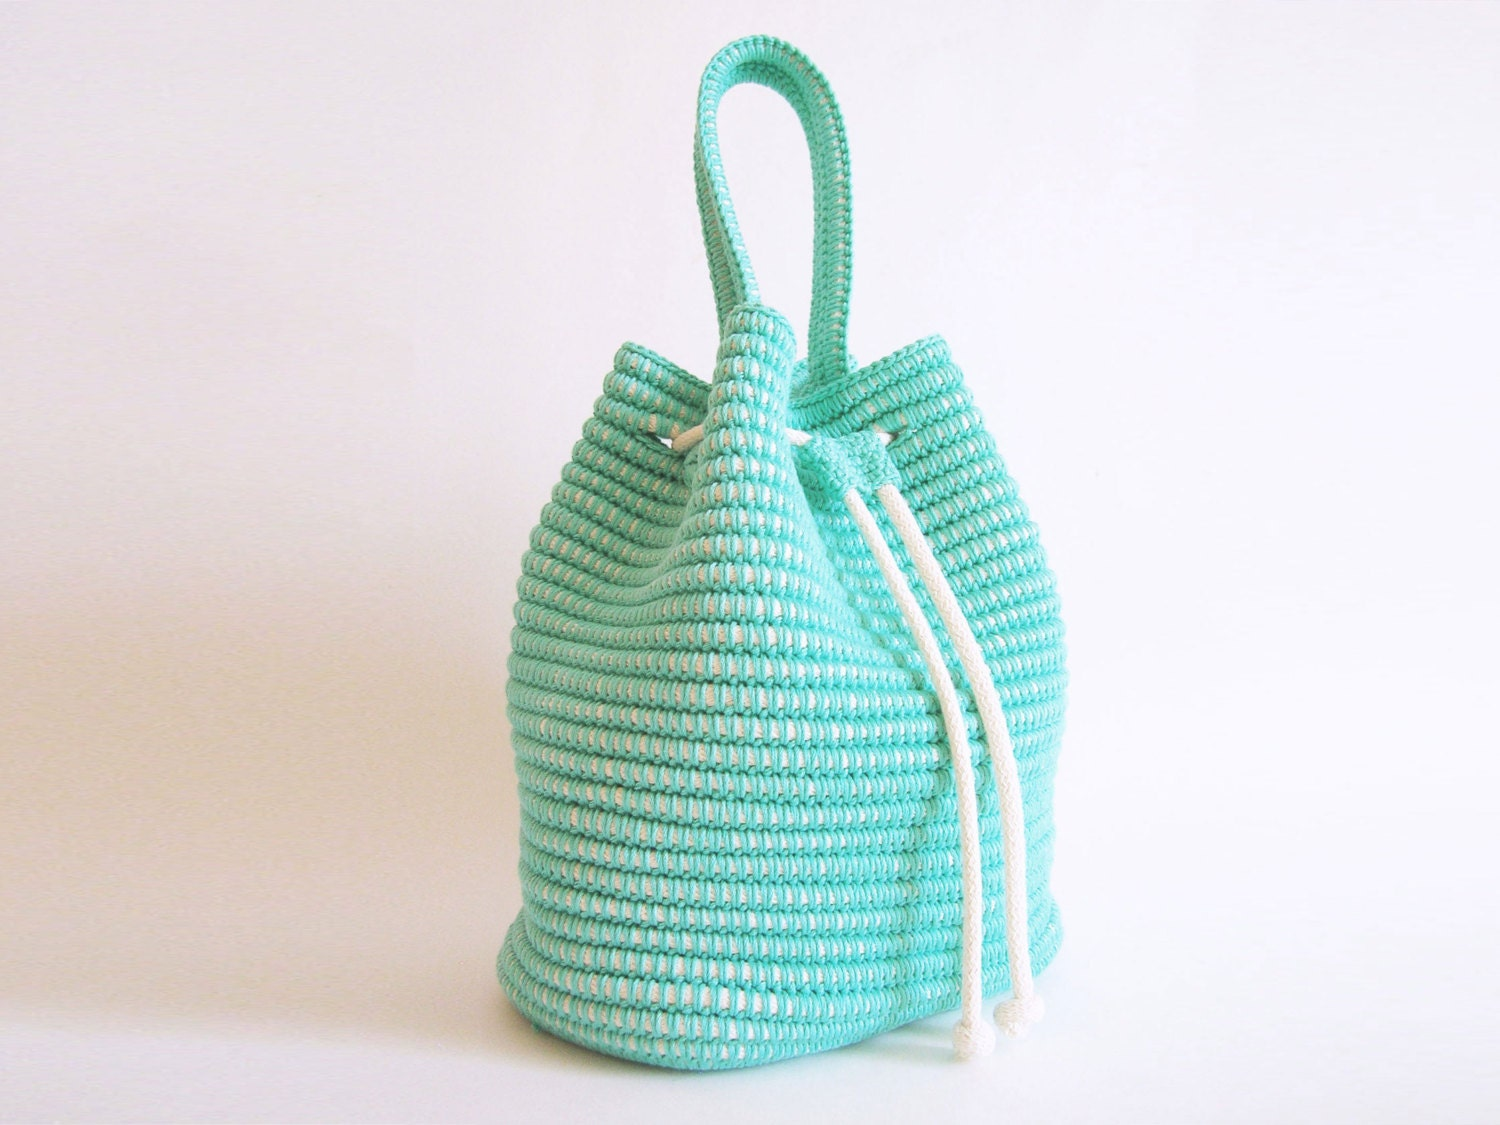 Crochet pattern for a drawstring bag. Practice tapestry